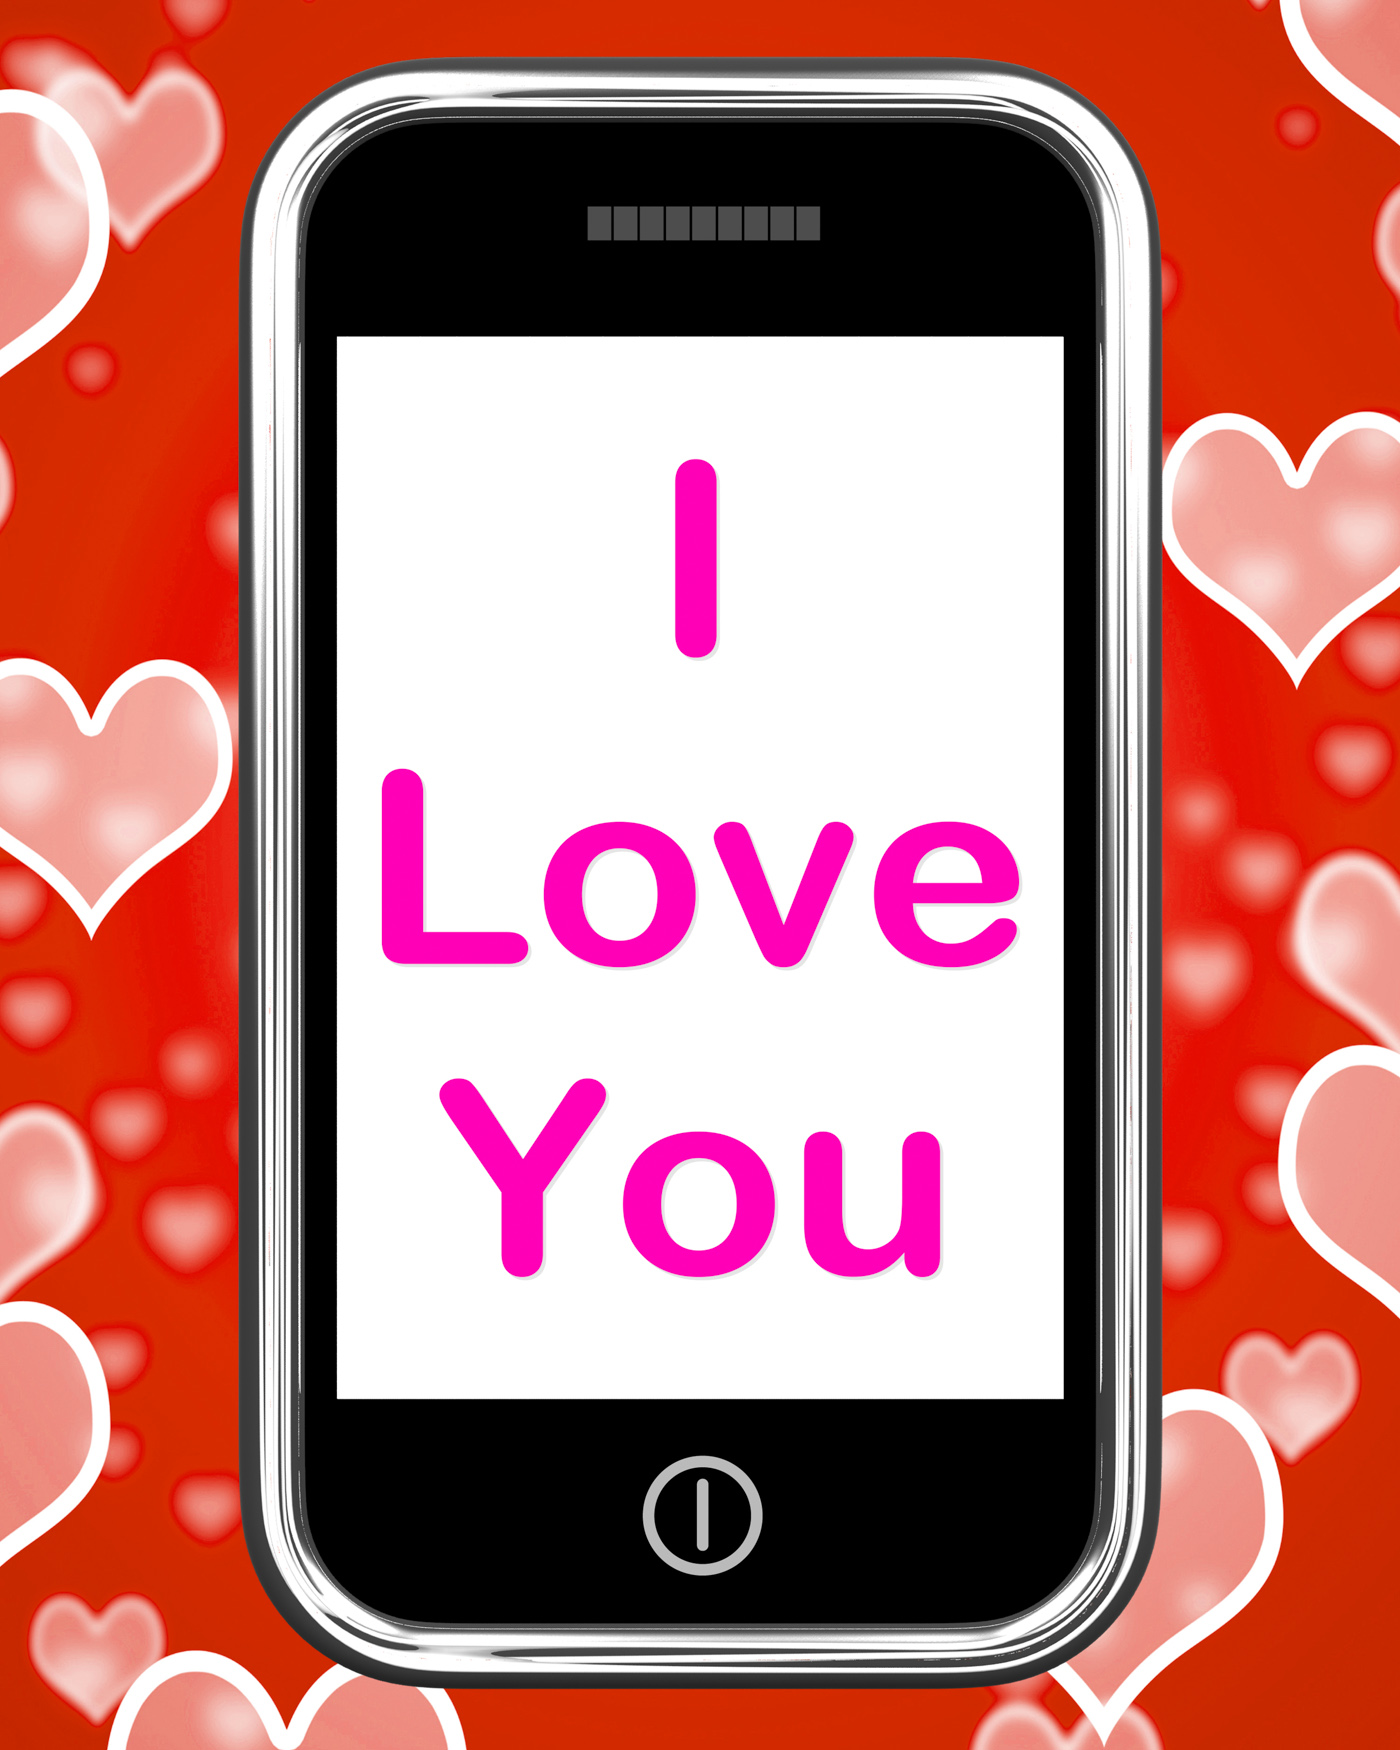 I love you on phone shows adore romance photo